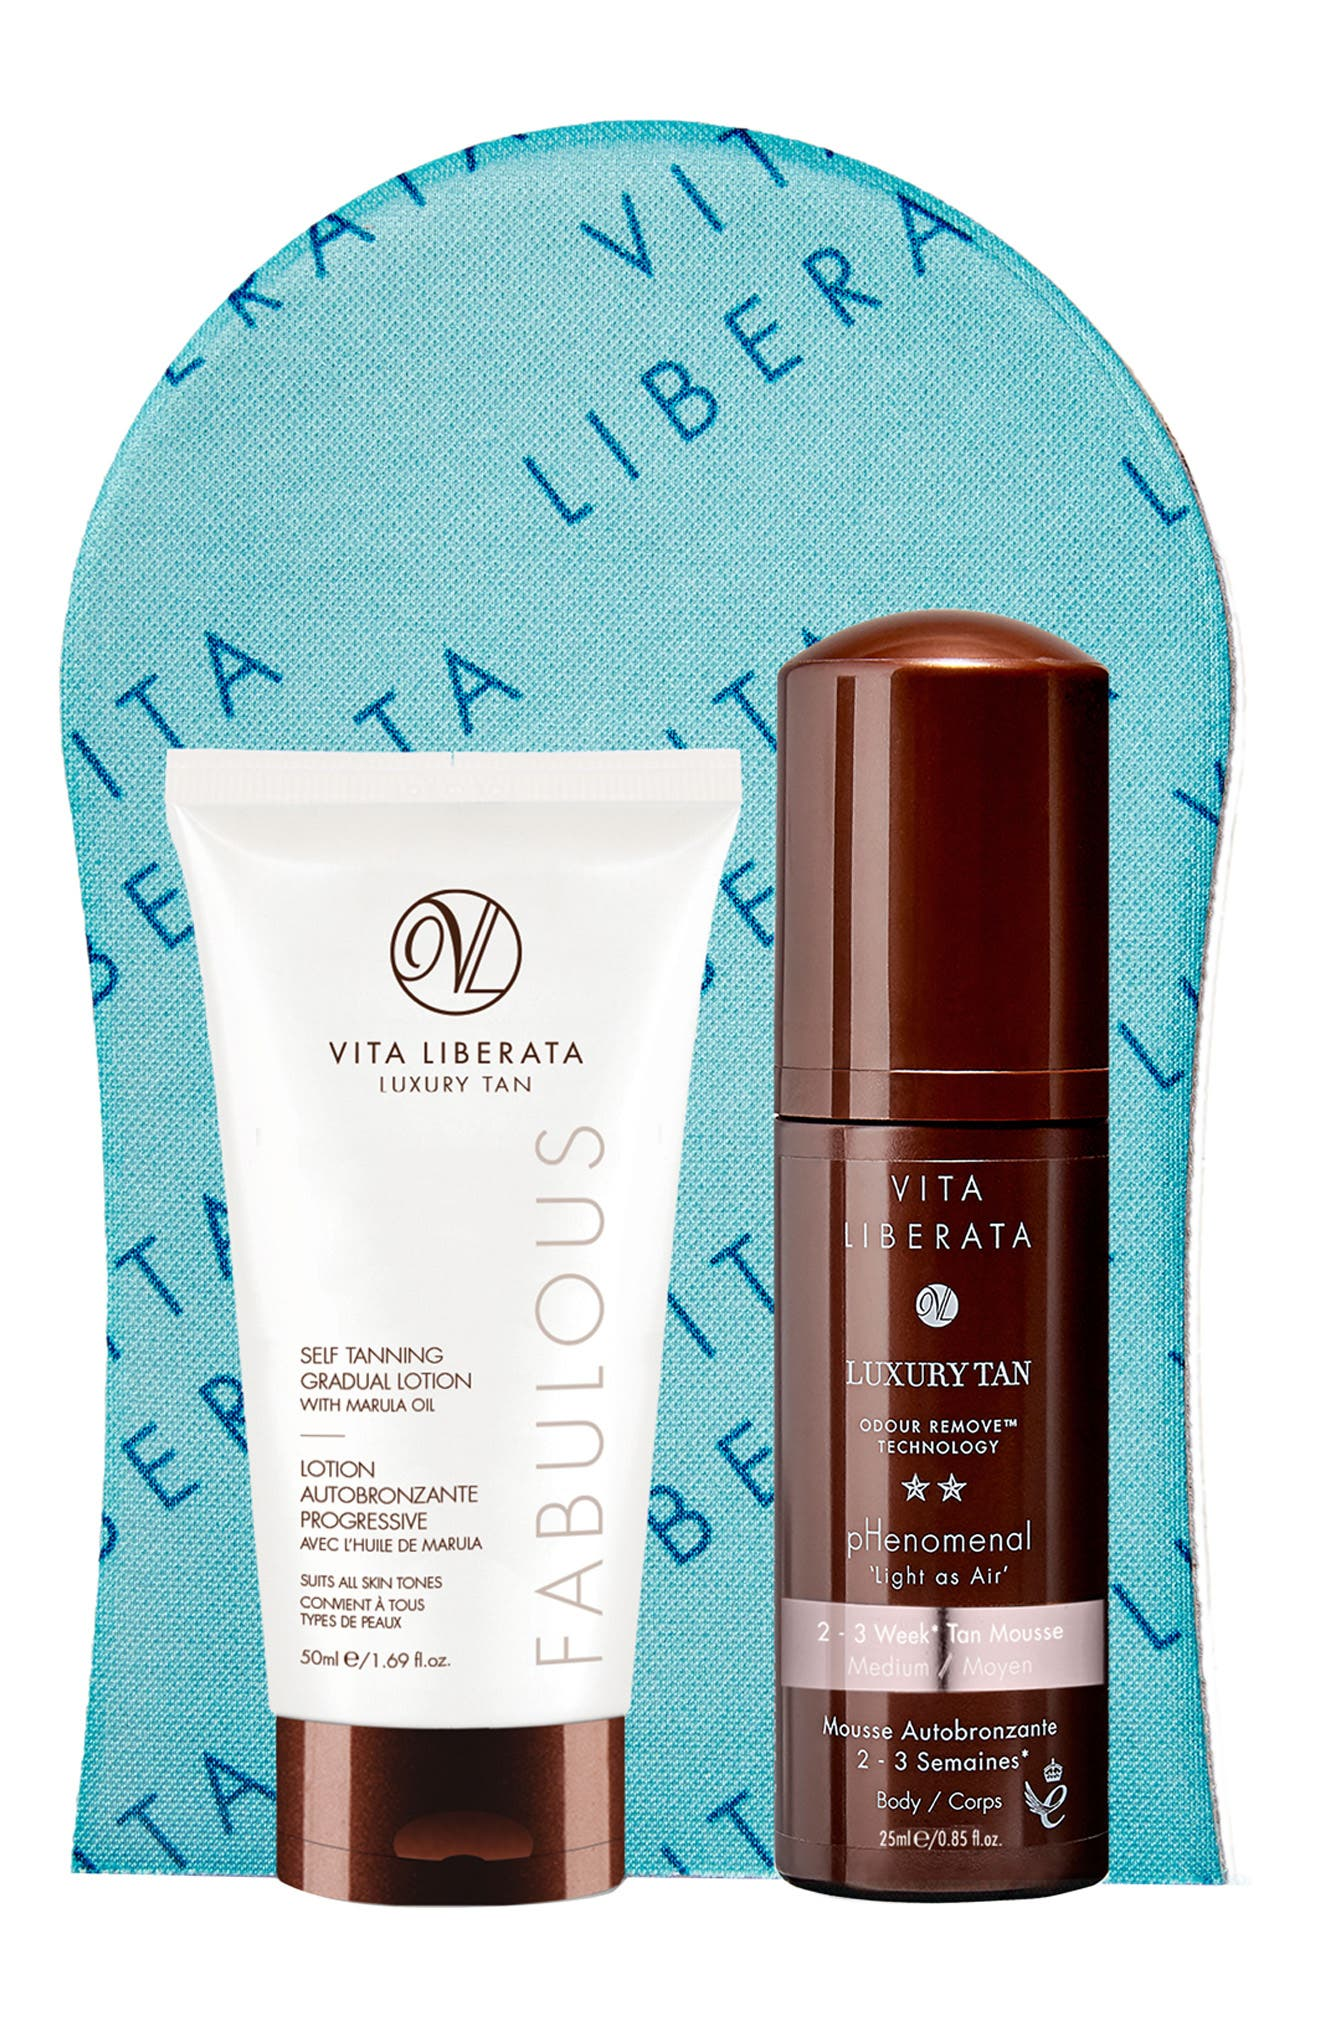 VITA LIBERATA Bronzed Basics Kit ($33.50 Value)